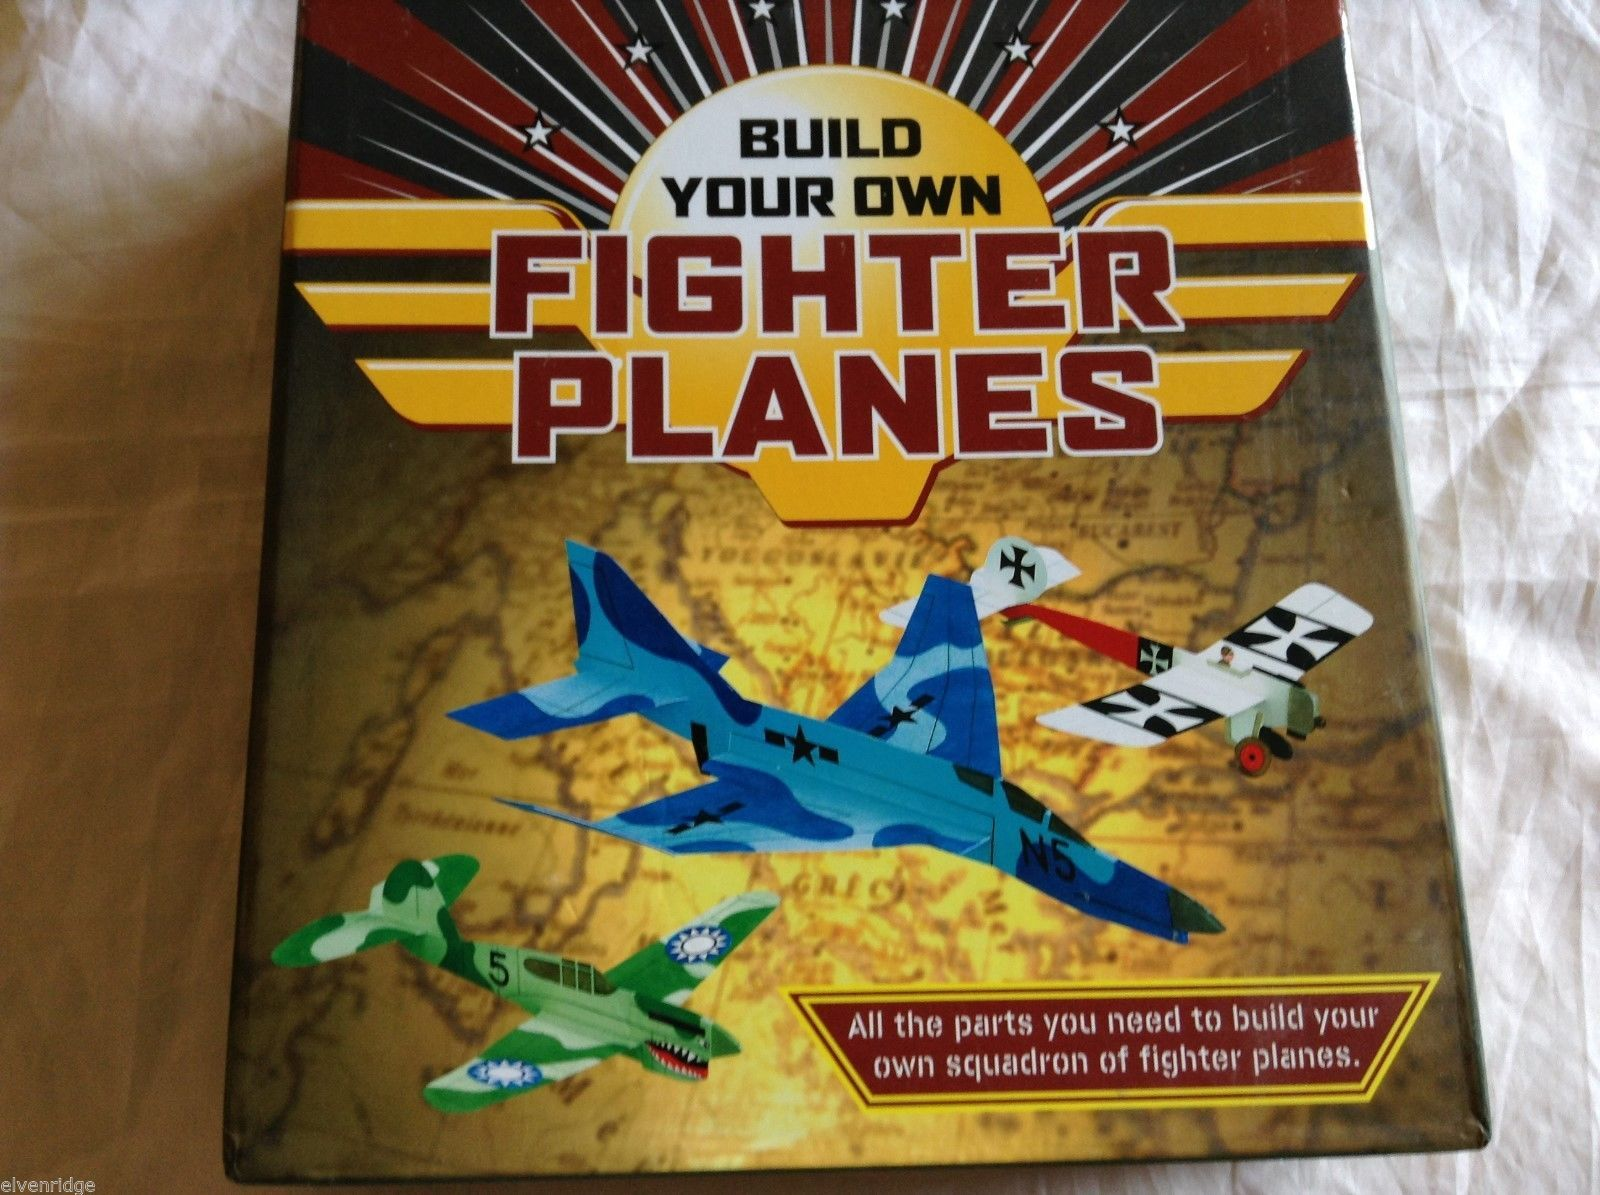 Build your own Fighter planes kit-18 projects